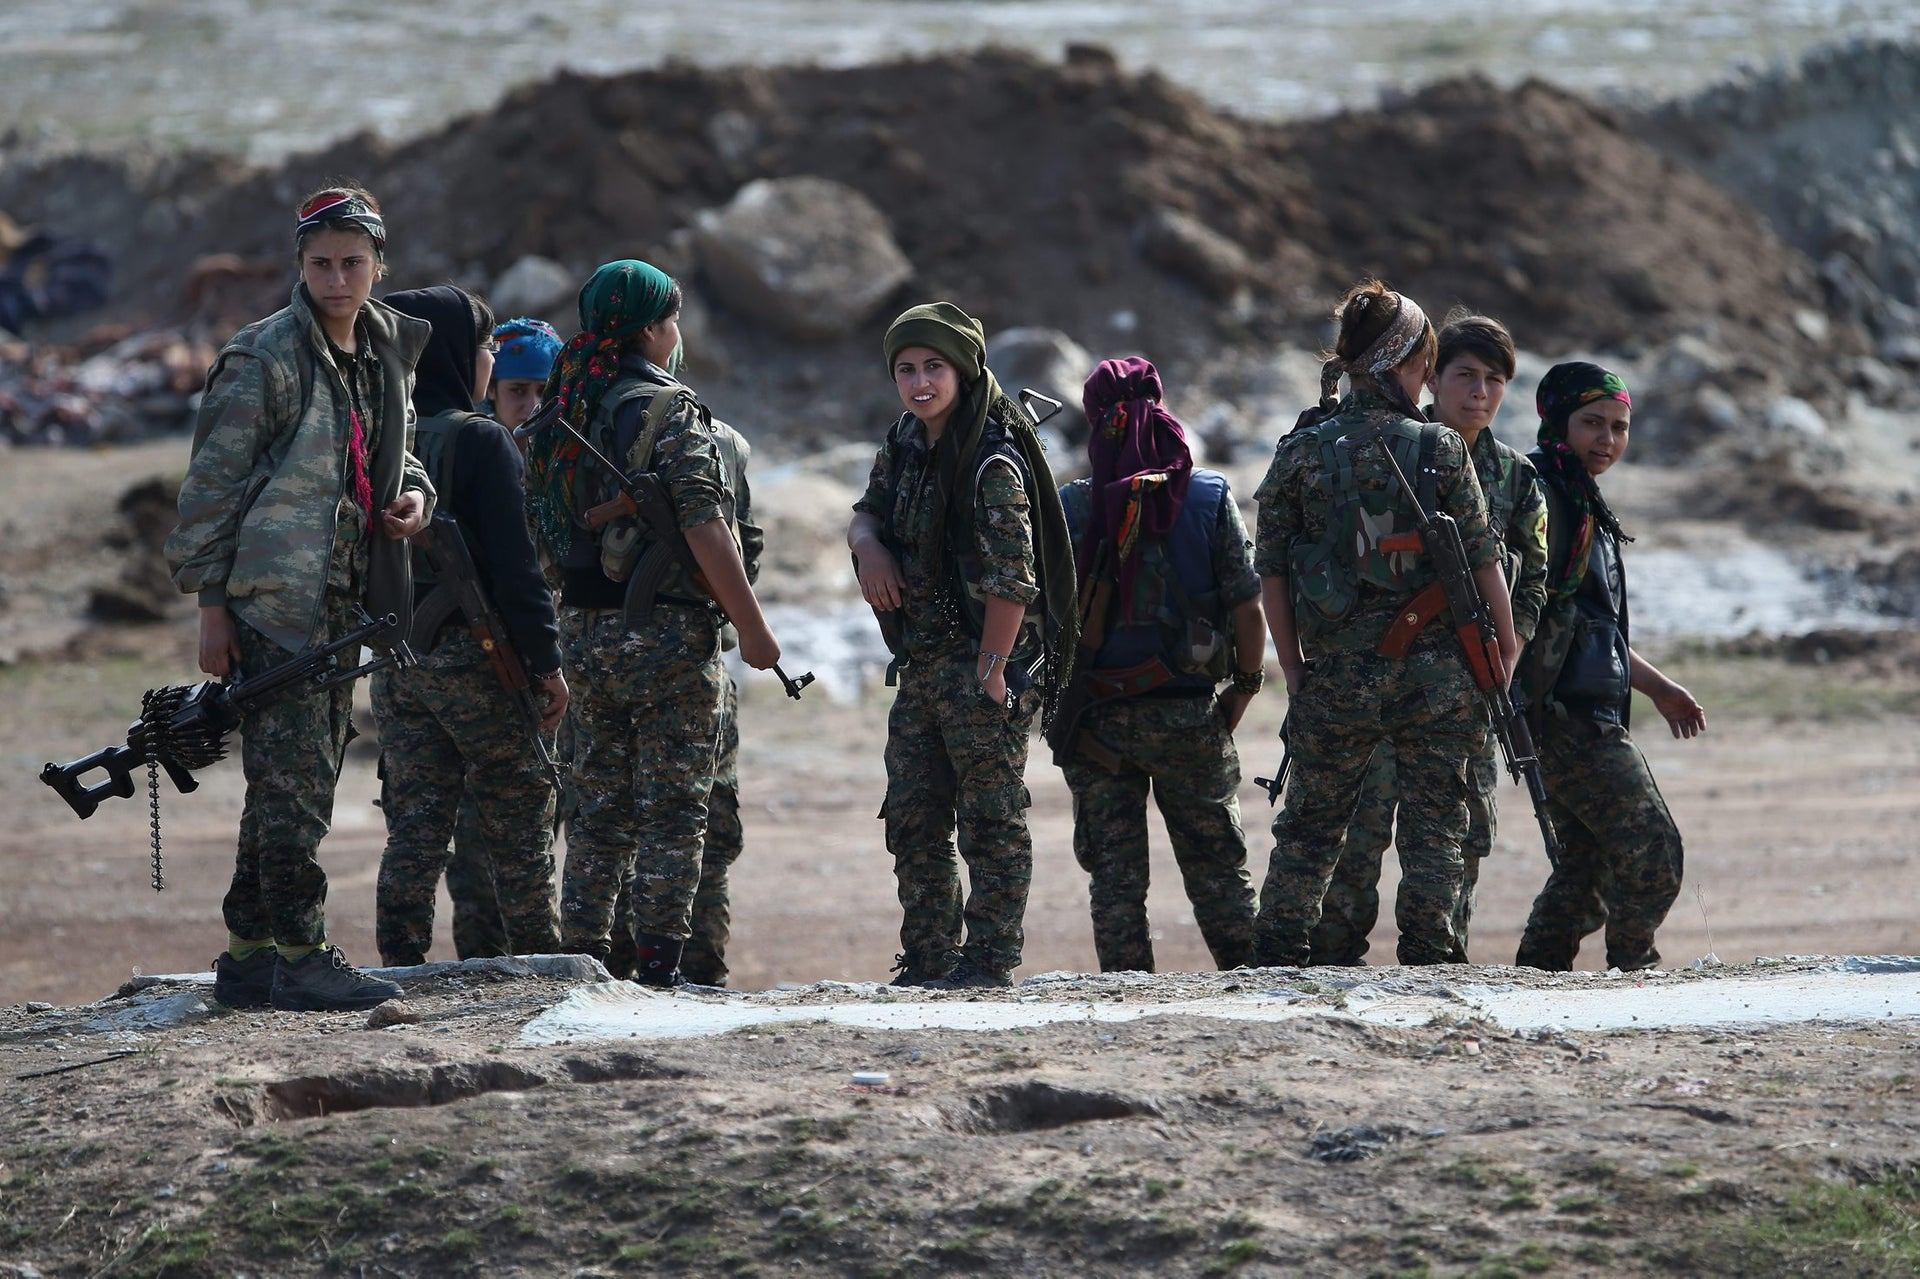 Female troops from the Syrian Democratic Forces discuss frontline positions from a forward operating base on November 10, 2015, in the autonomous region of Rojava, Syria.